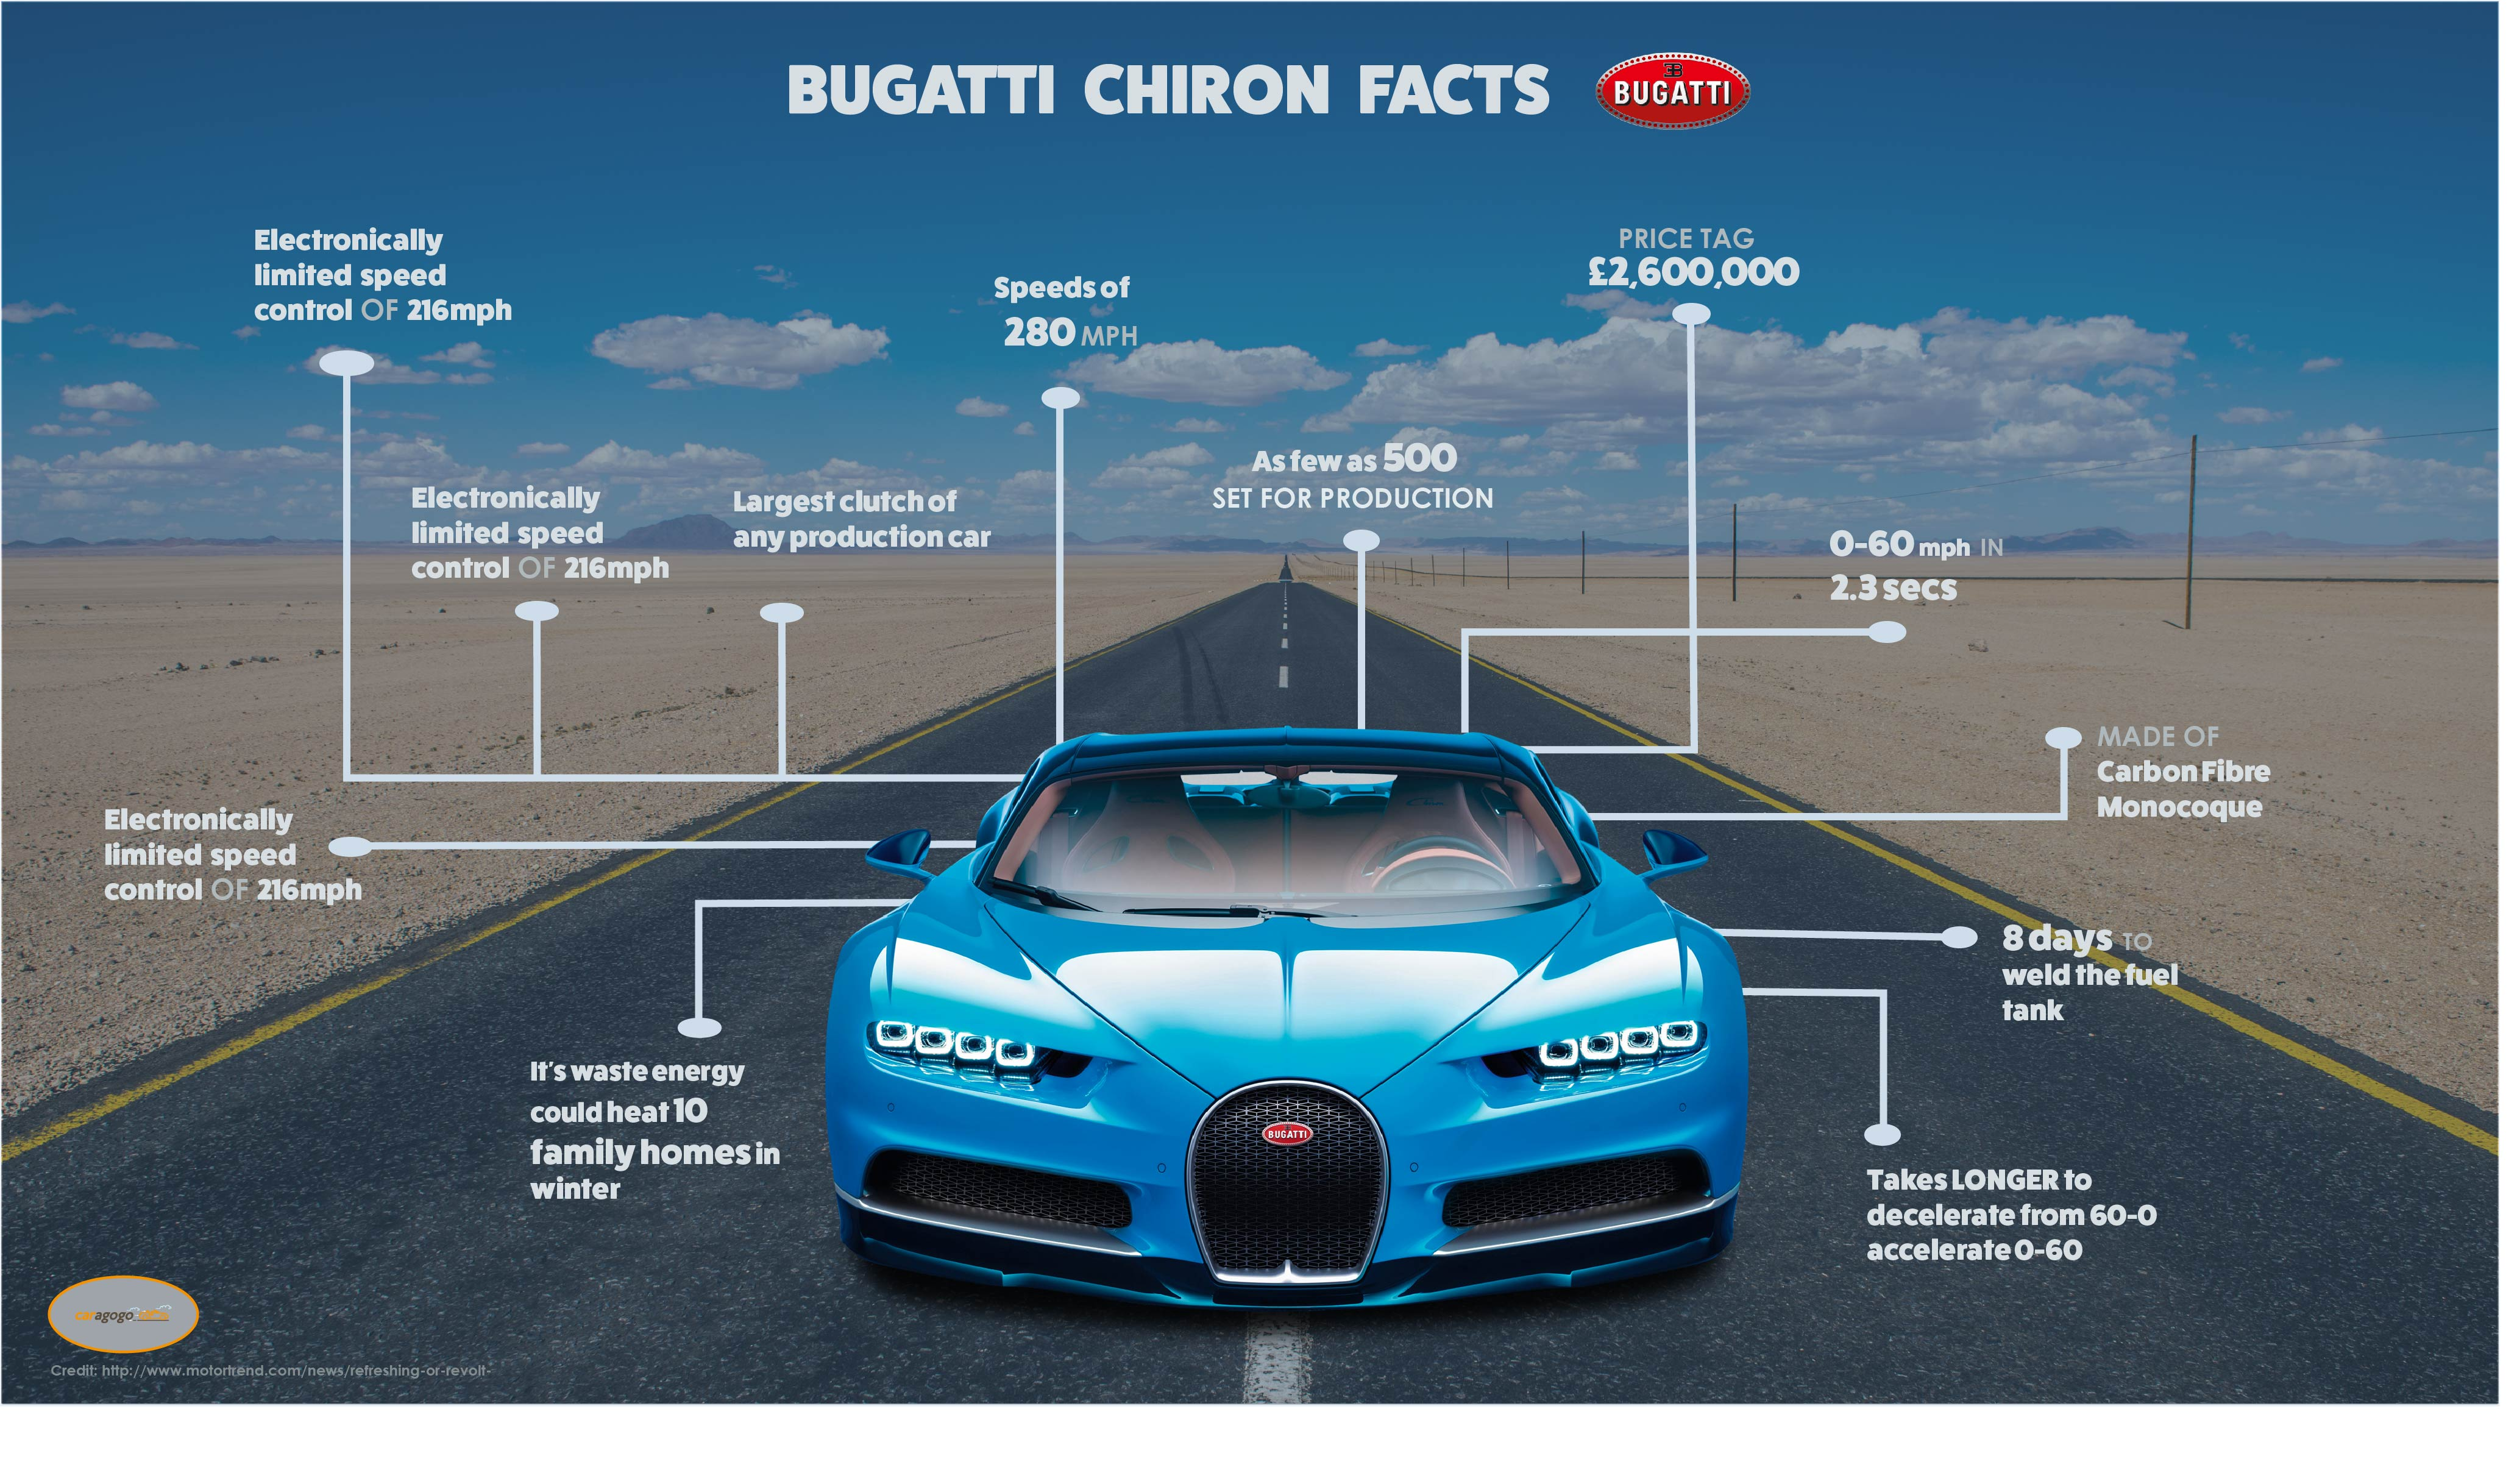 Incredible Bugatti Chiron Facts - Caragogo